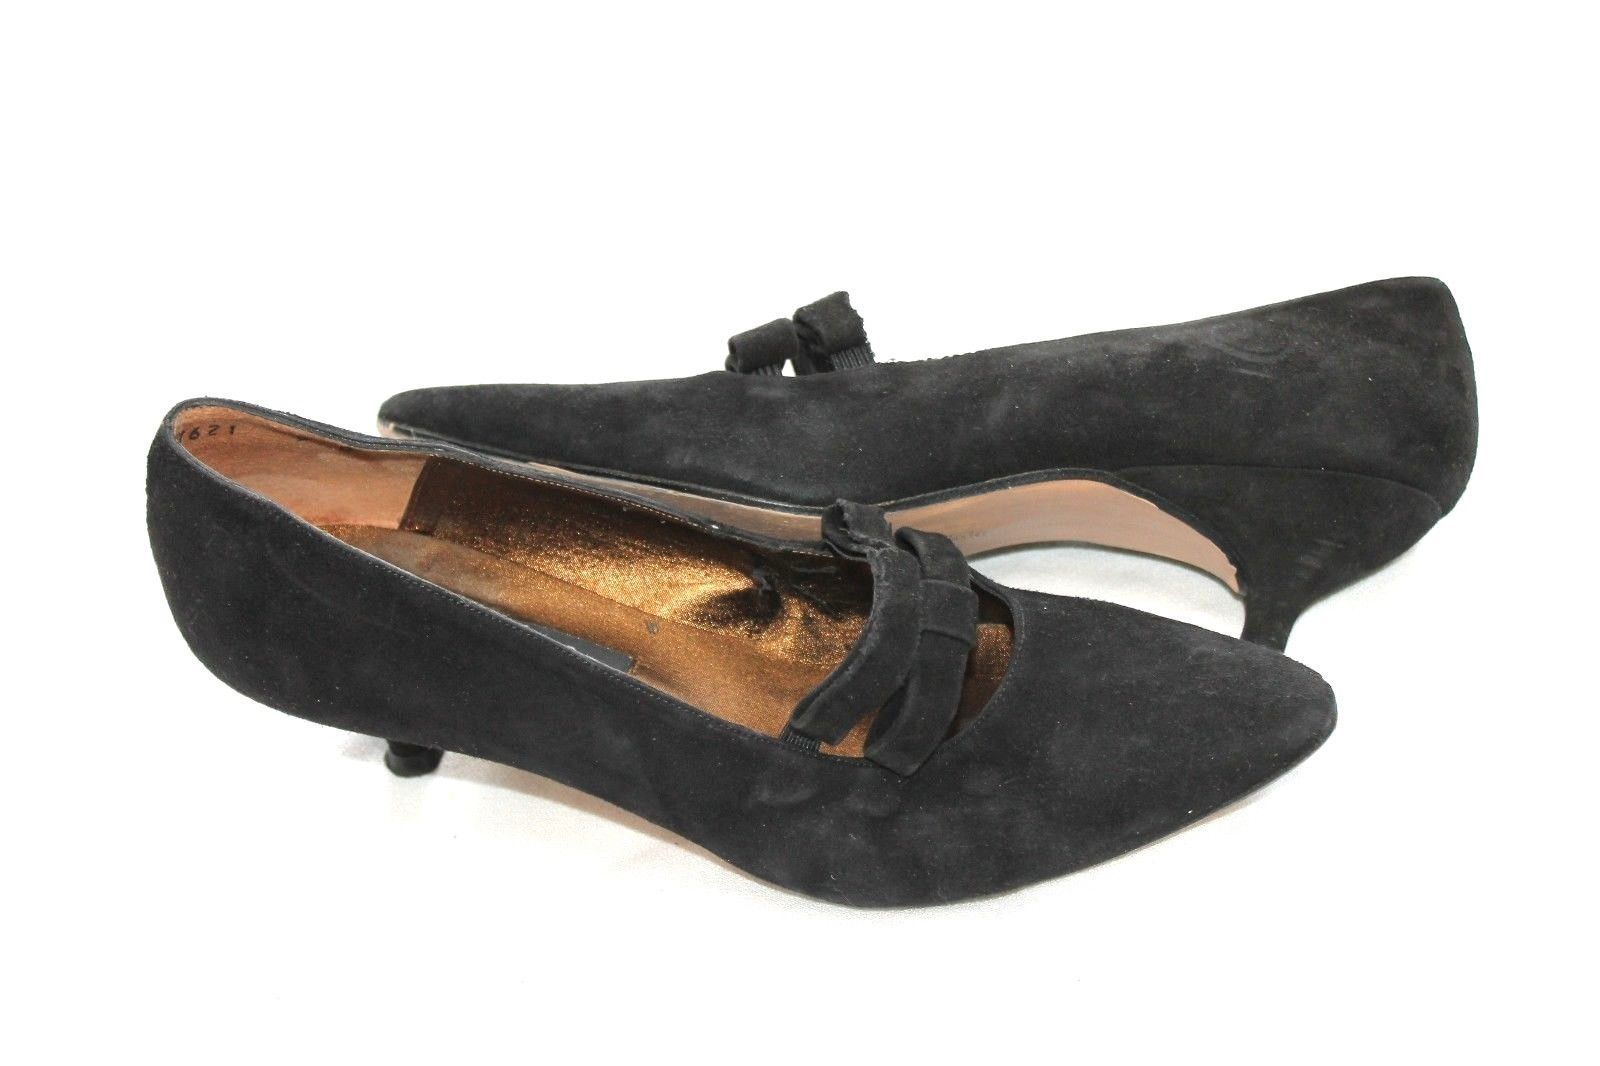 8d0a4147508 Kenneth Cole New York Suede Kitten Heels and 50 similar items. 57